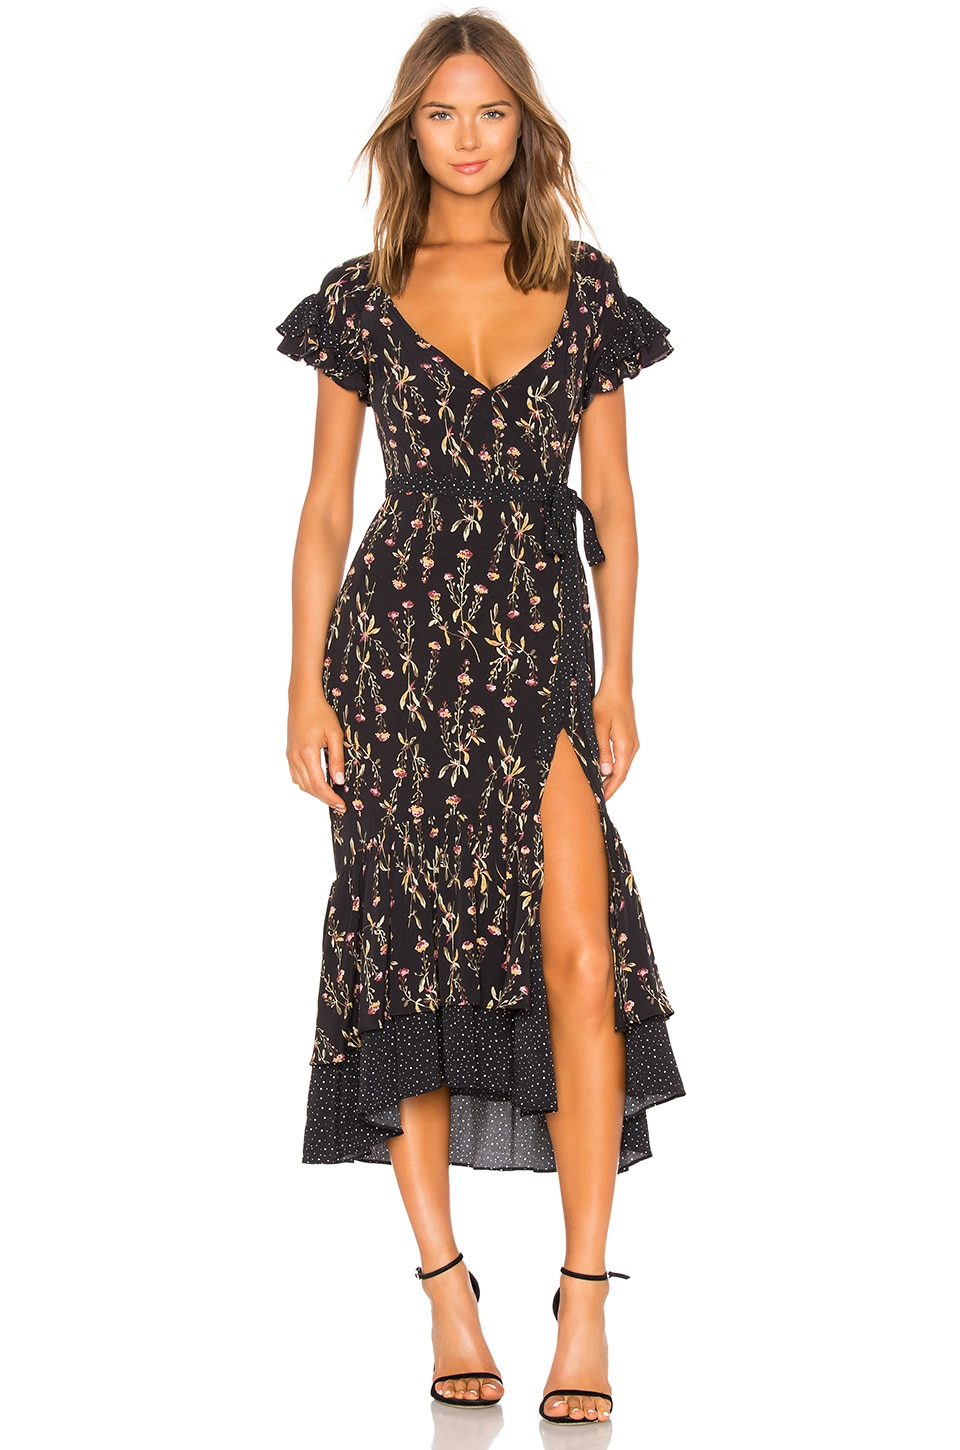 LIKELY Melanie Dress in Black Multi